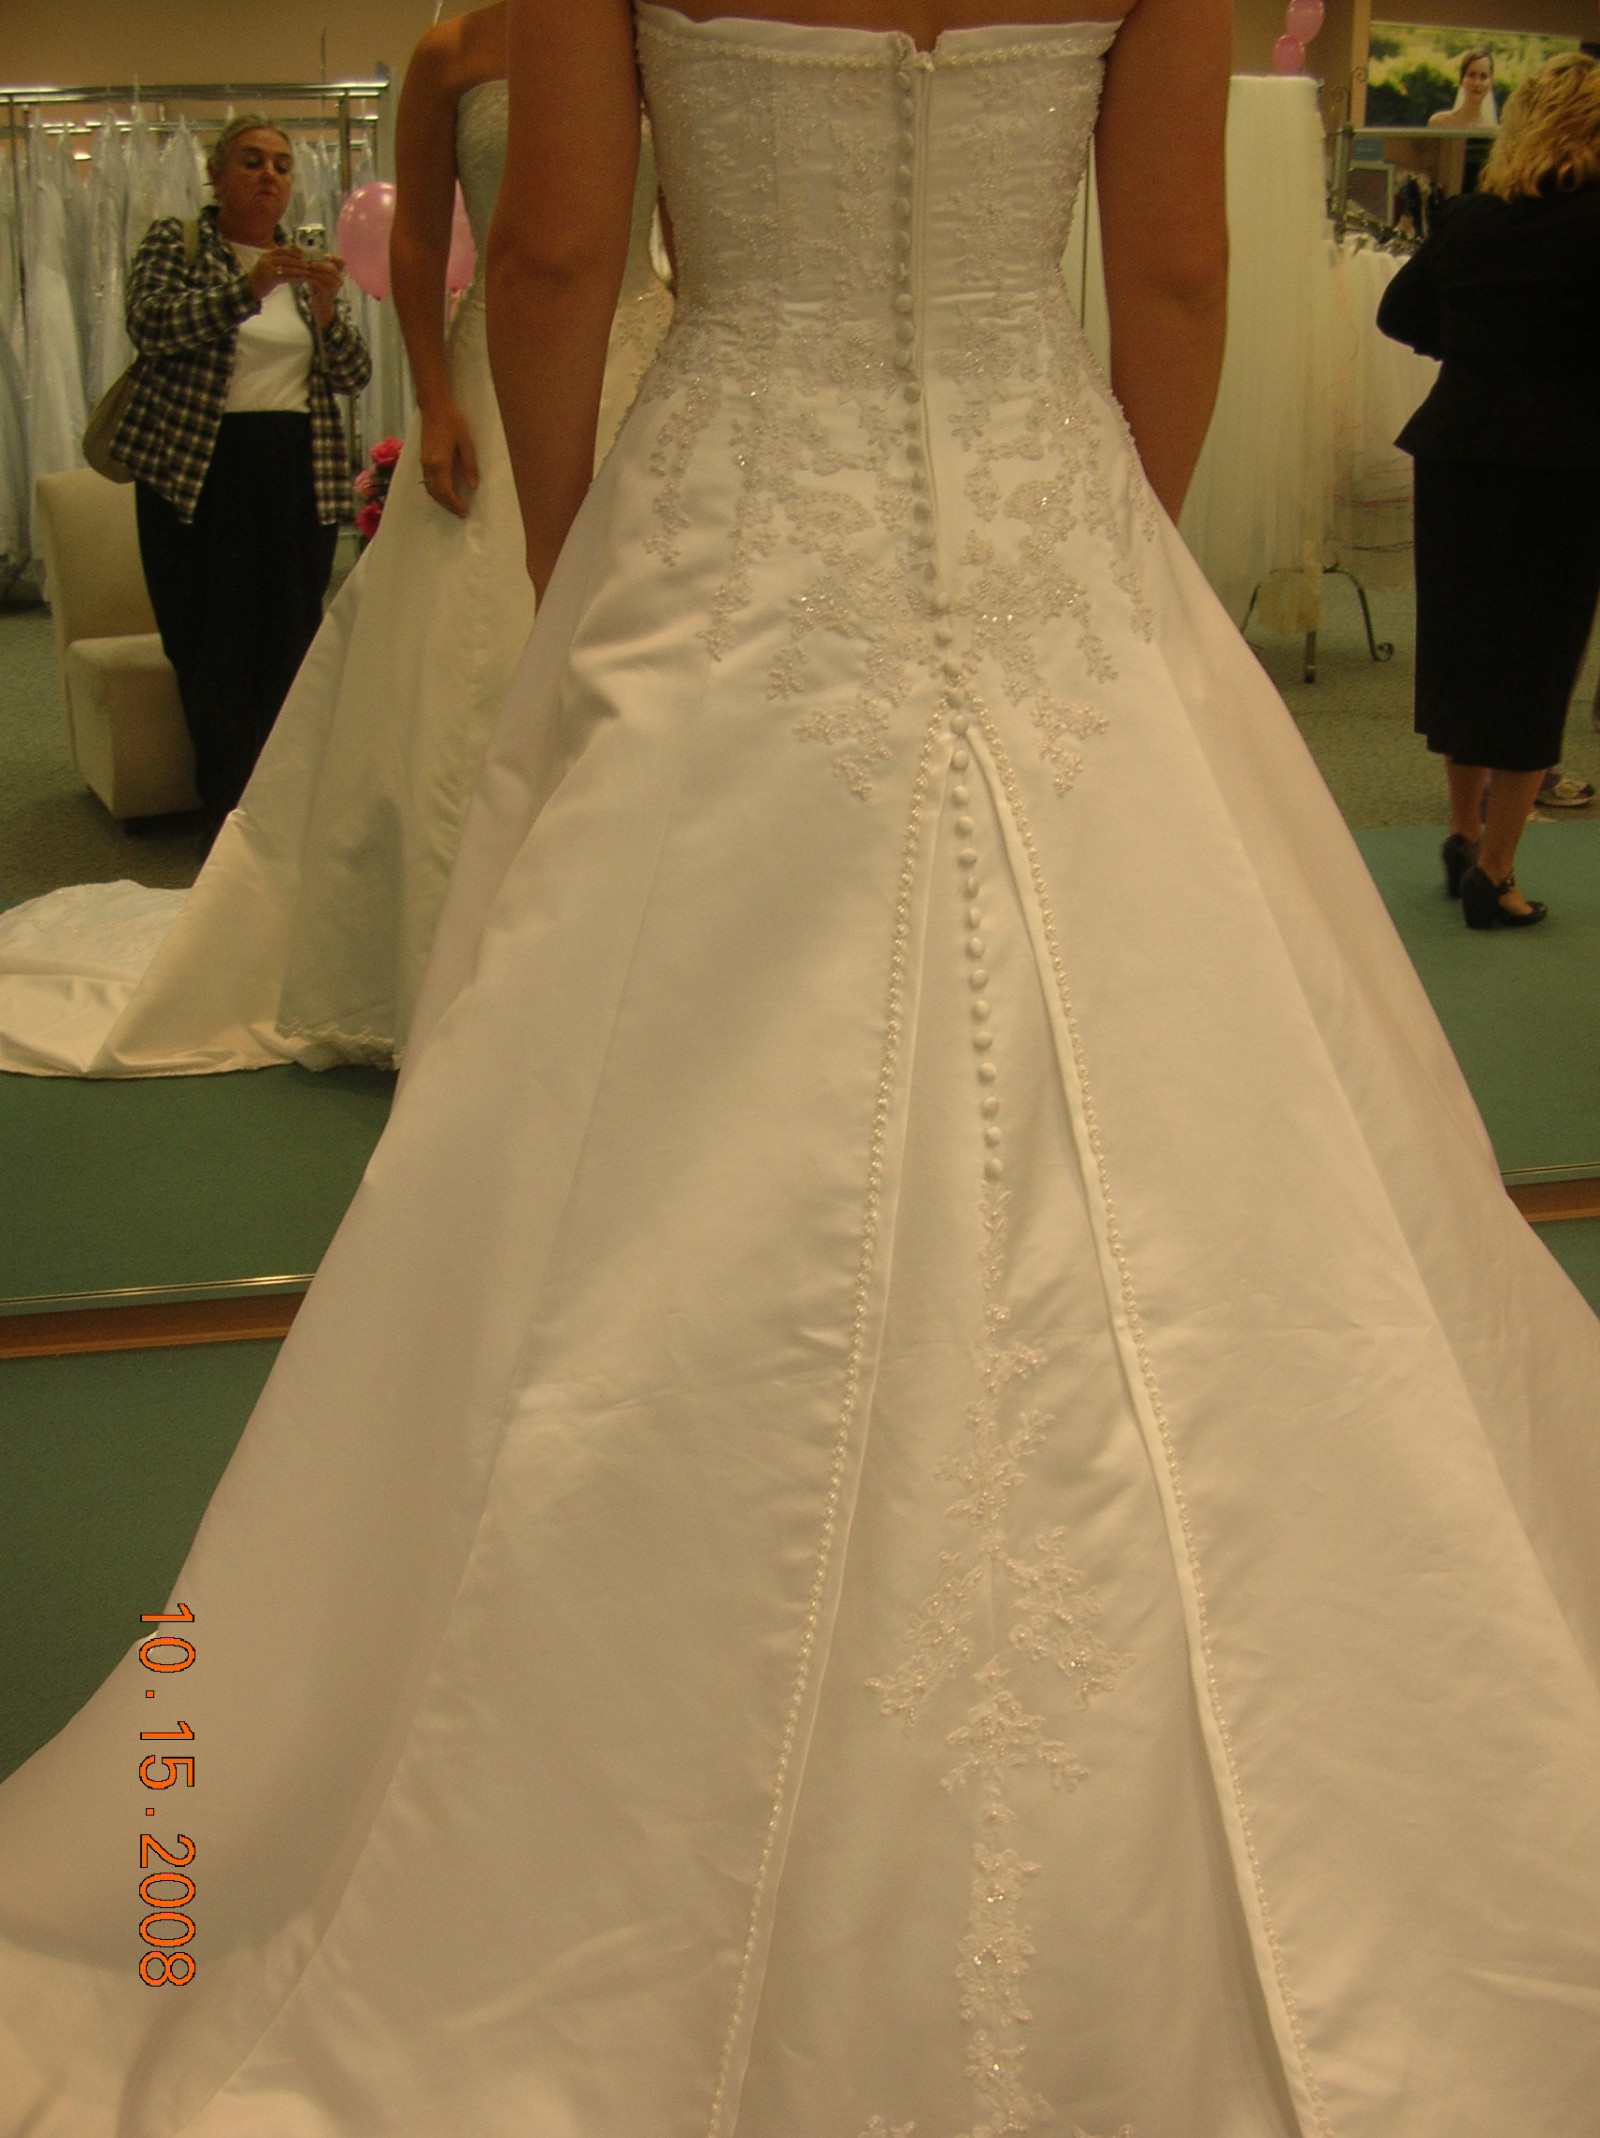 Wedding Dresses Jefferson St Dallas Tx : Alfred angelo v wedding dress on sale off